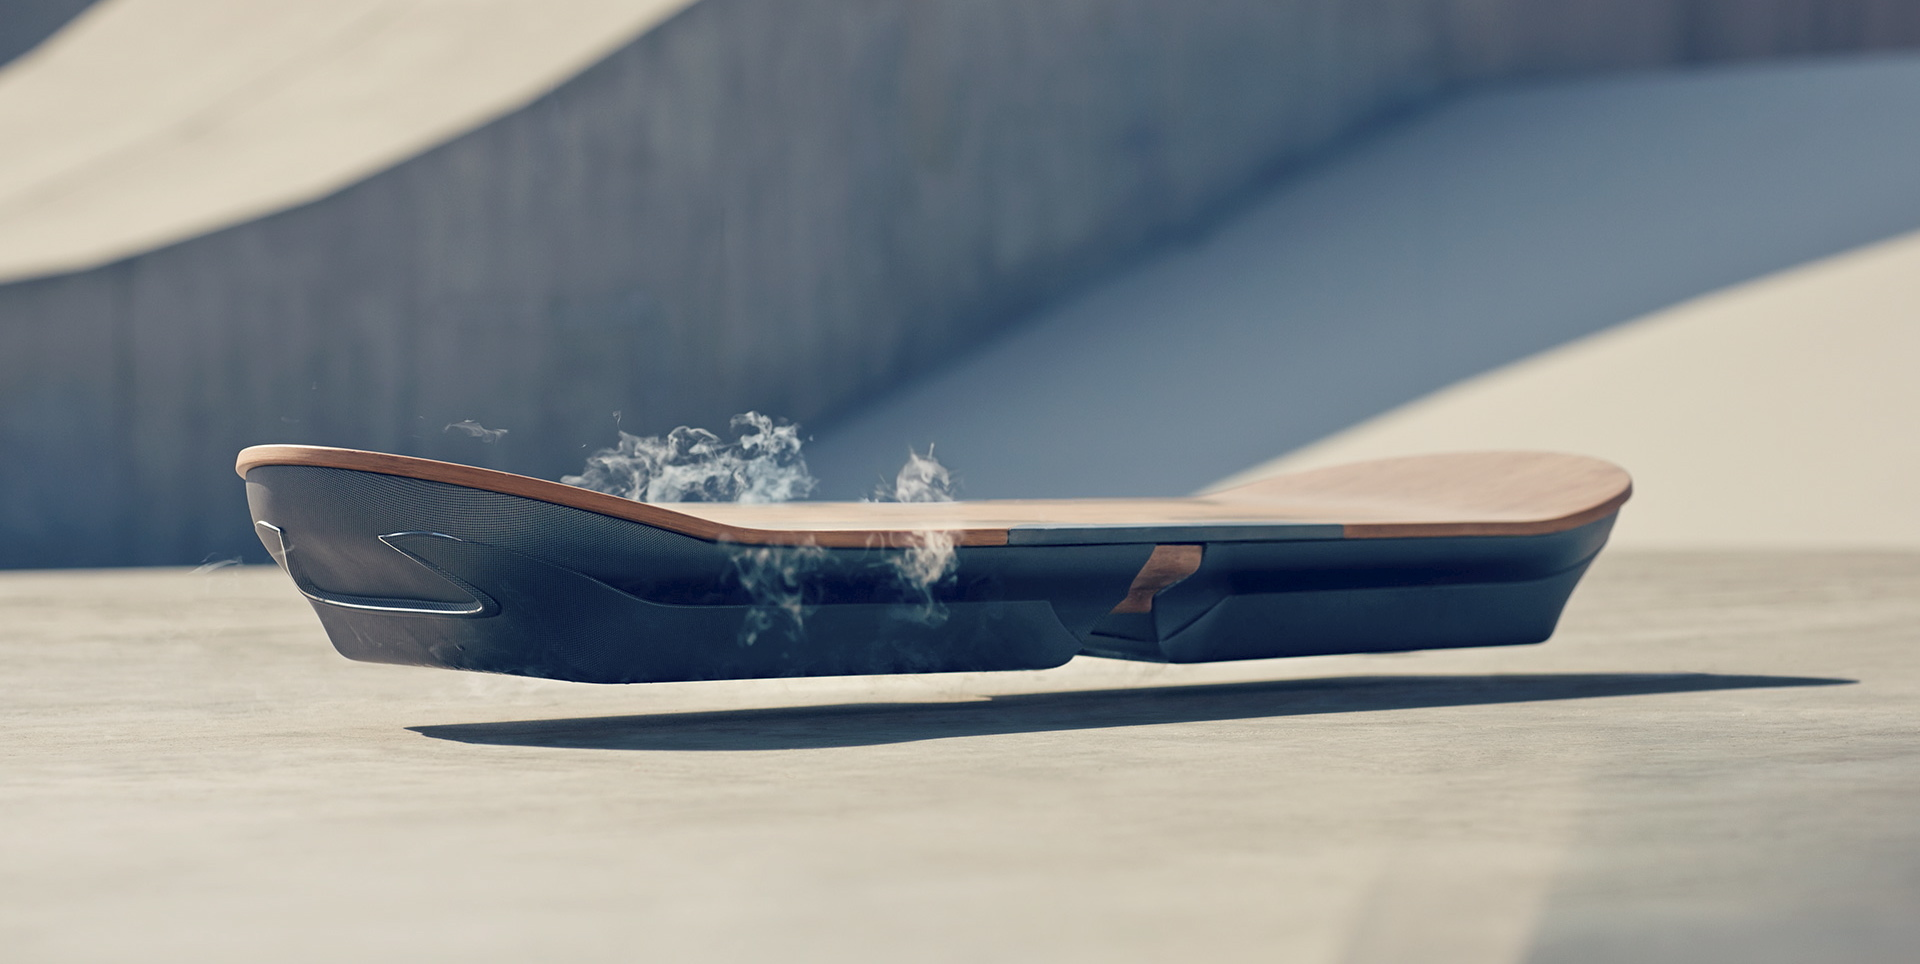 The SLIDE. Image via Lexus website.